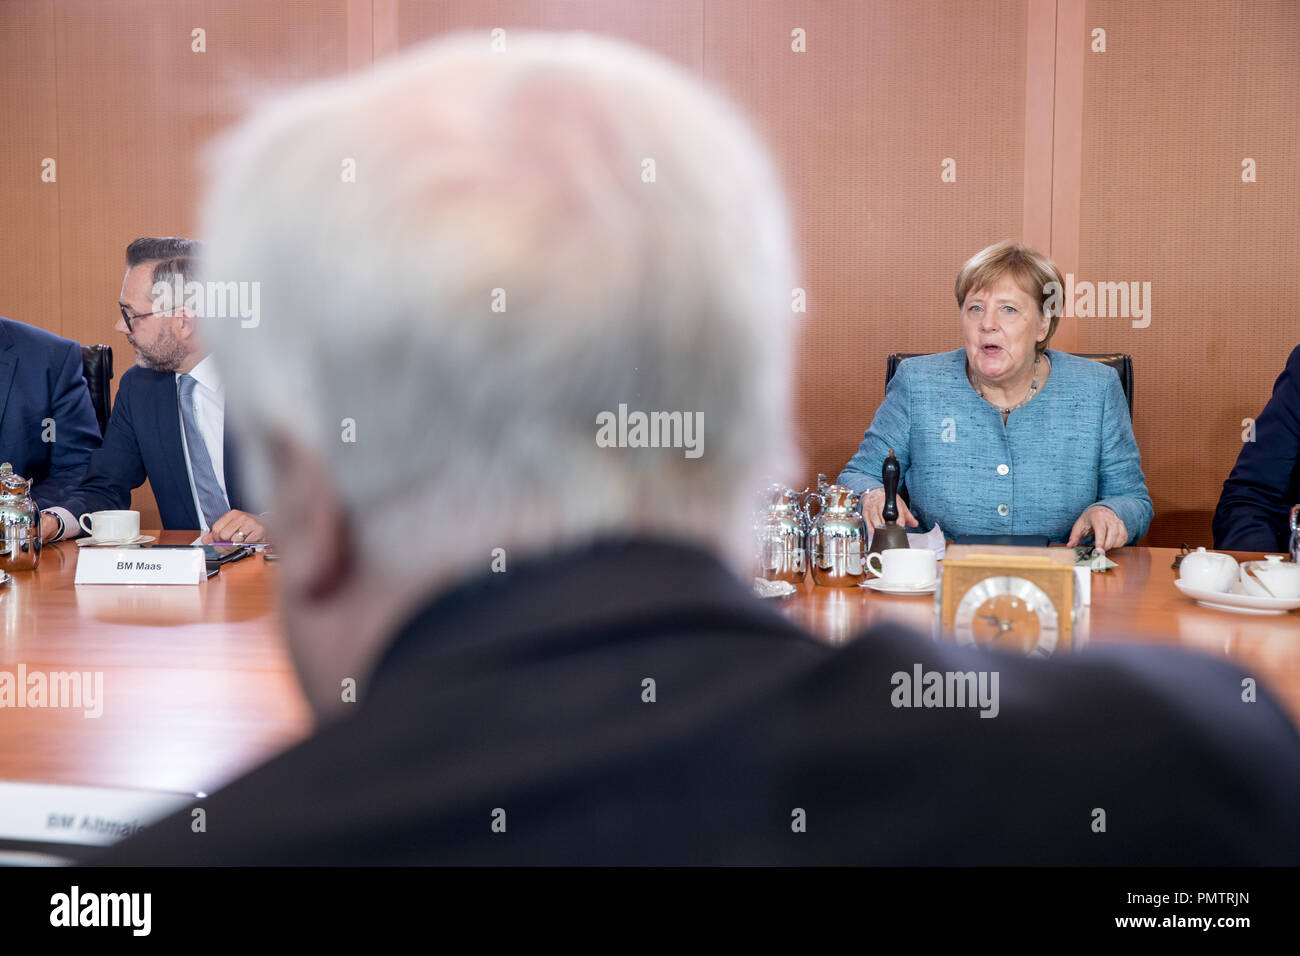 19 September 2018, Berlin: Federal Chancellor Angela Merkel (CDU) sits opposite Horst Seehofer (CSU), Federal Minister of the Interior, Home and Building, at the Chancellor's Office at the beginning of the meeting of the Federal Cabinet. Photo: Michael Kappeler/dpa - Stock Image